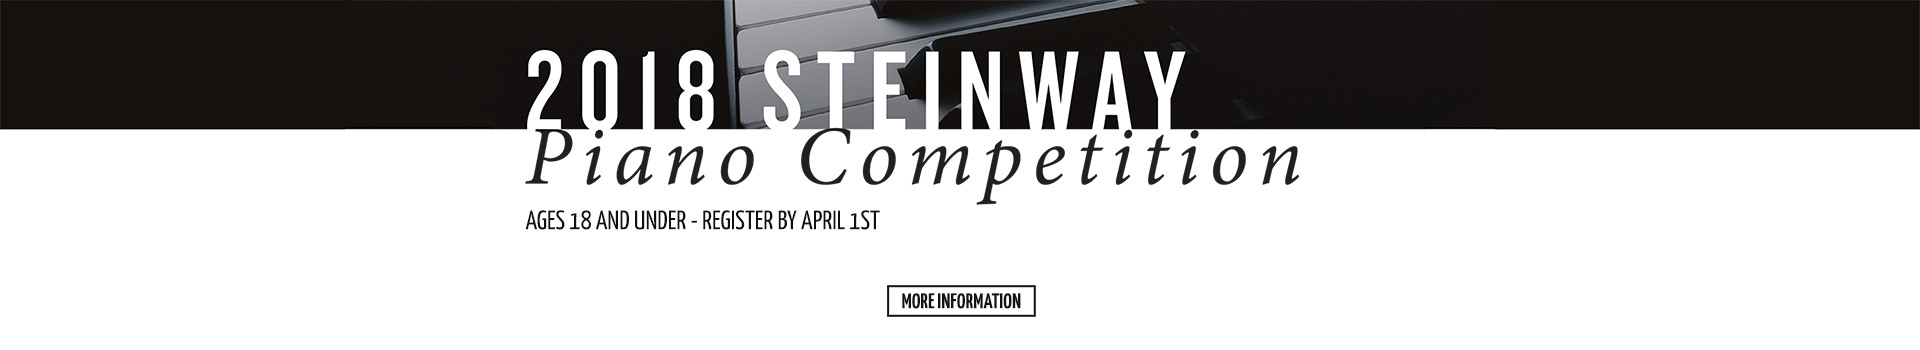 2018 Steinway Piano Competition